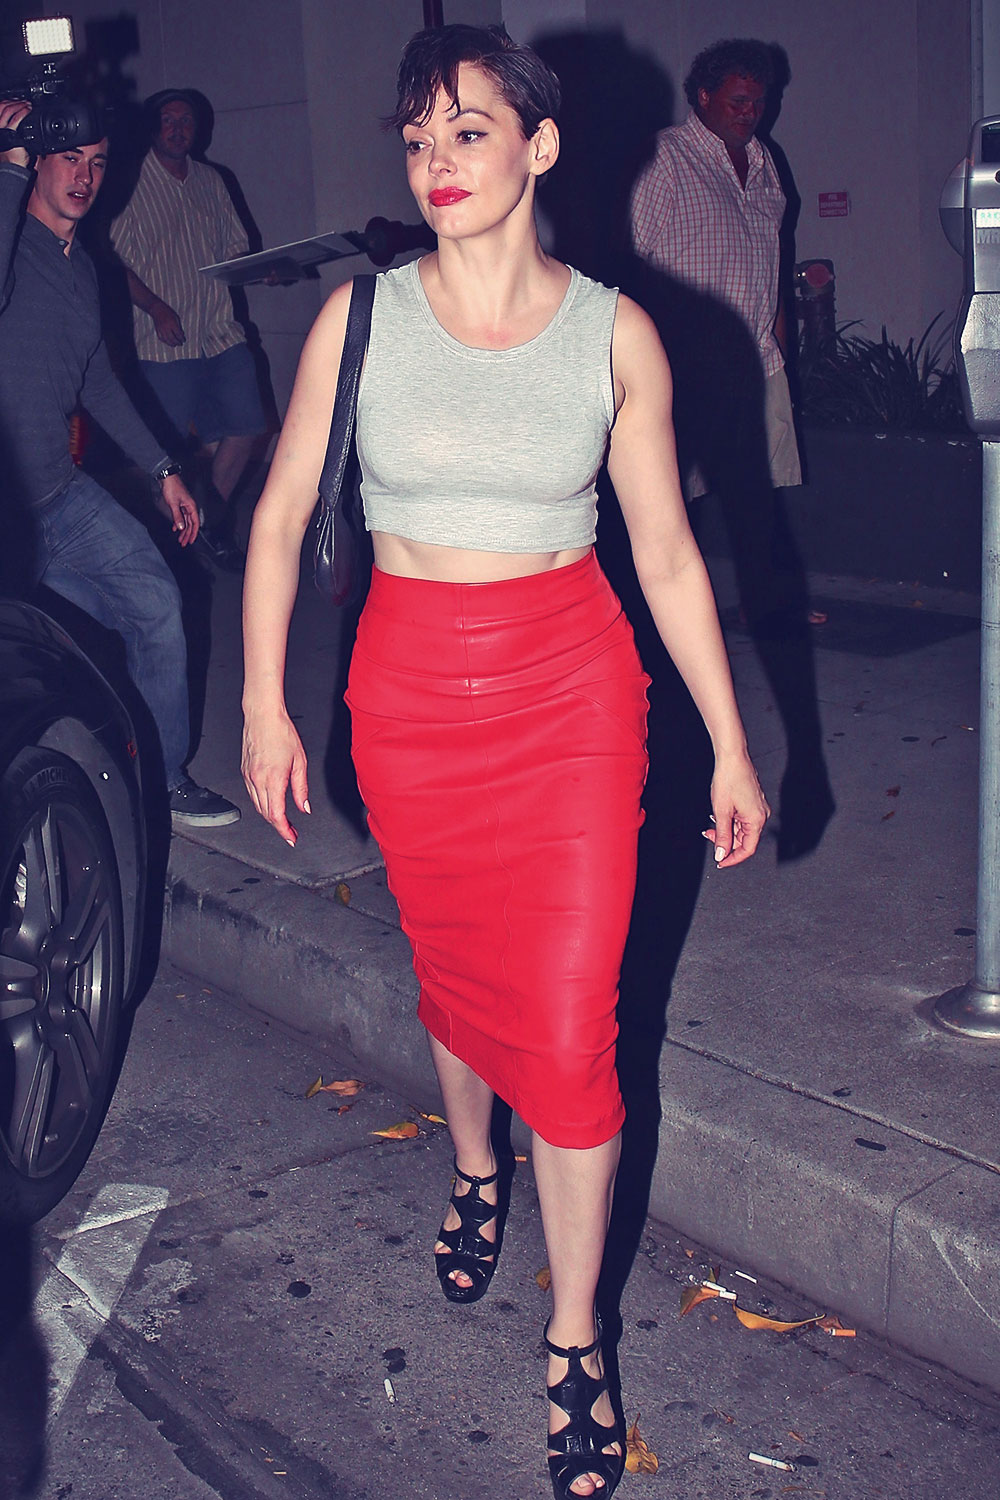 Rose Mcgowan leaves Craigs restaurant after having a dinner